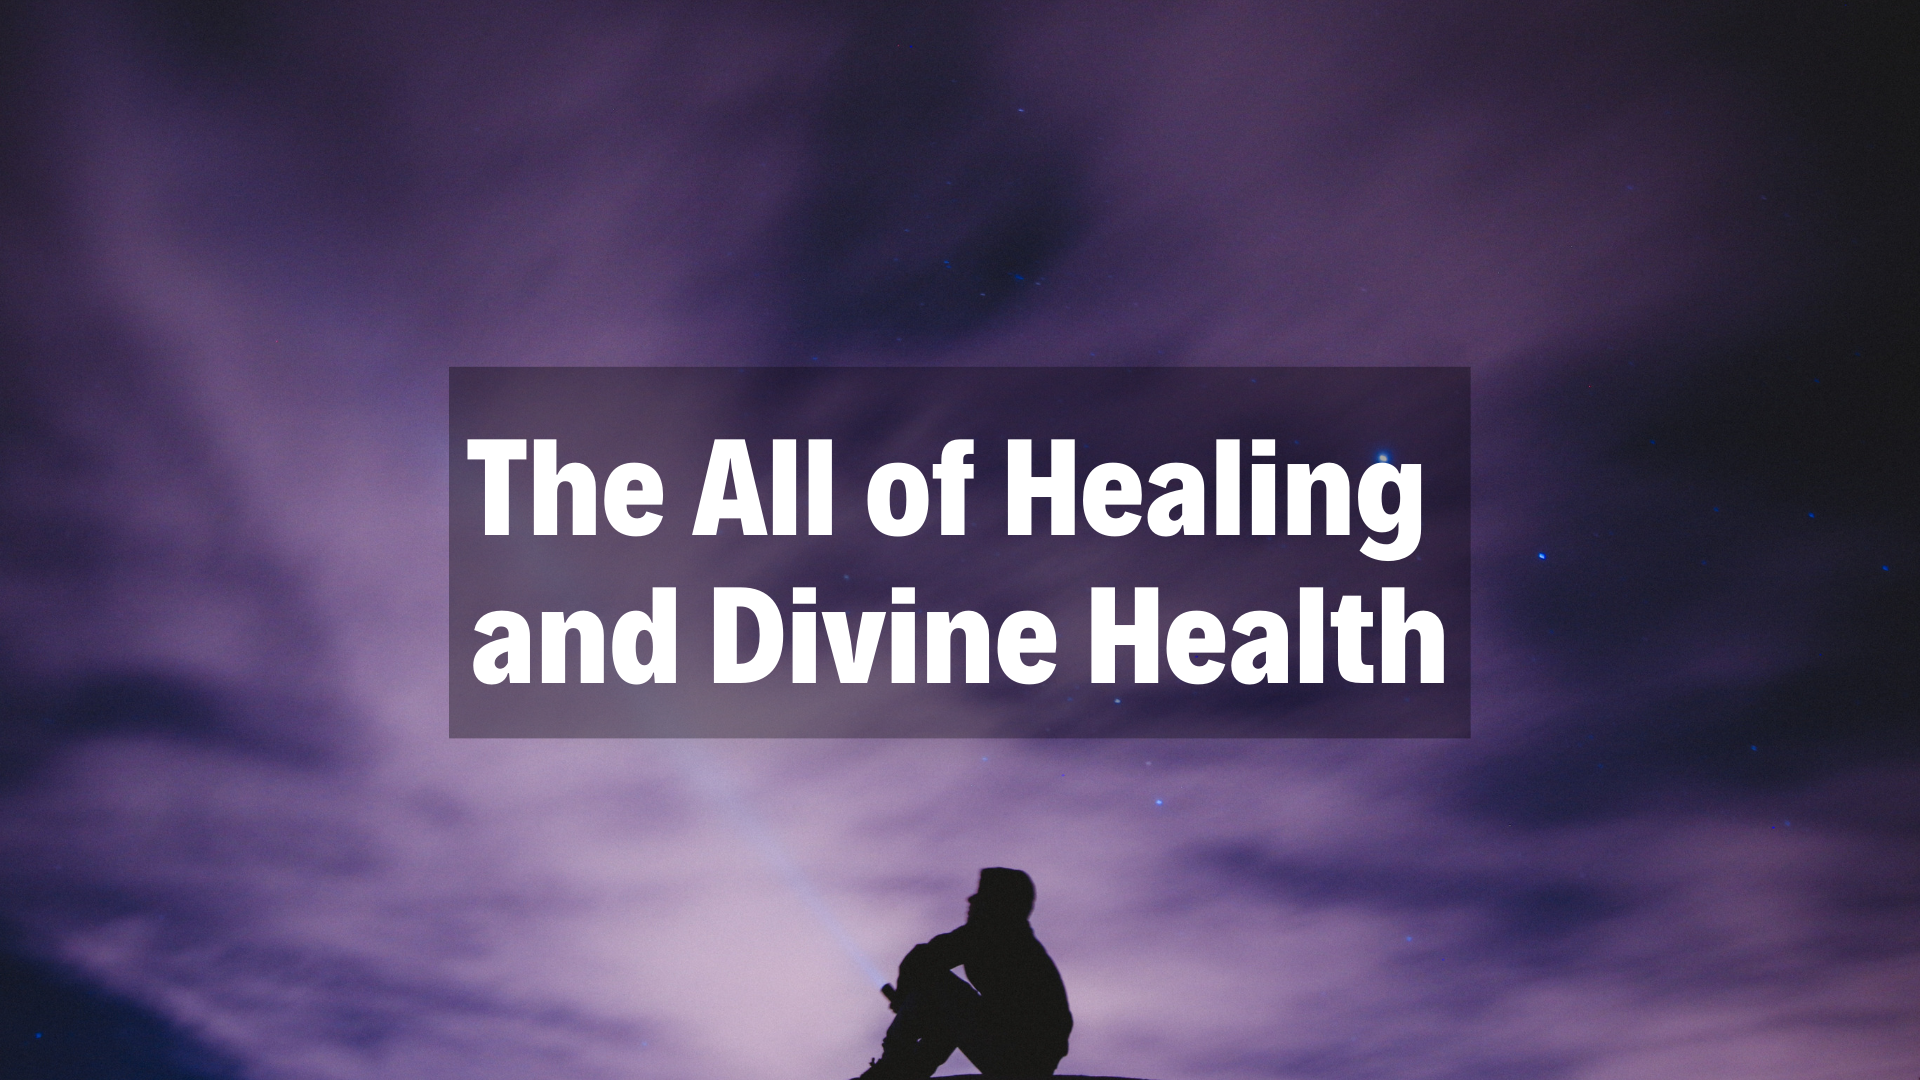 The All of Healing and Divine Health - 1/20/19